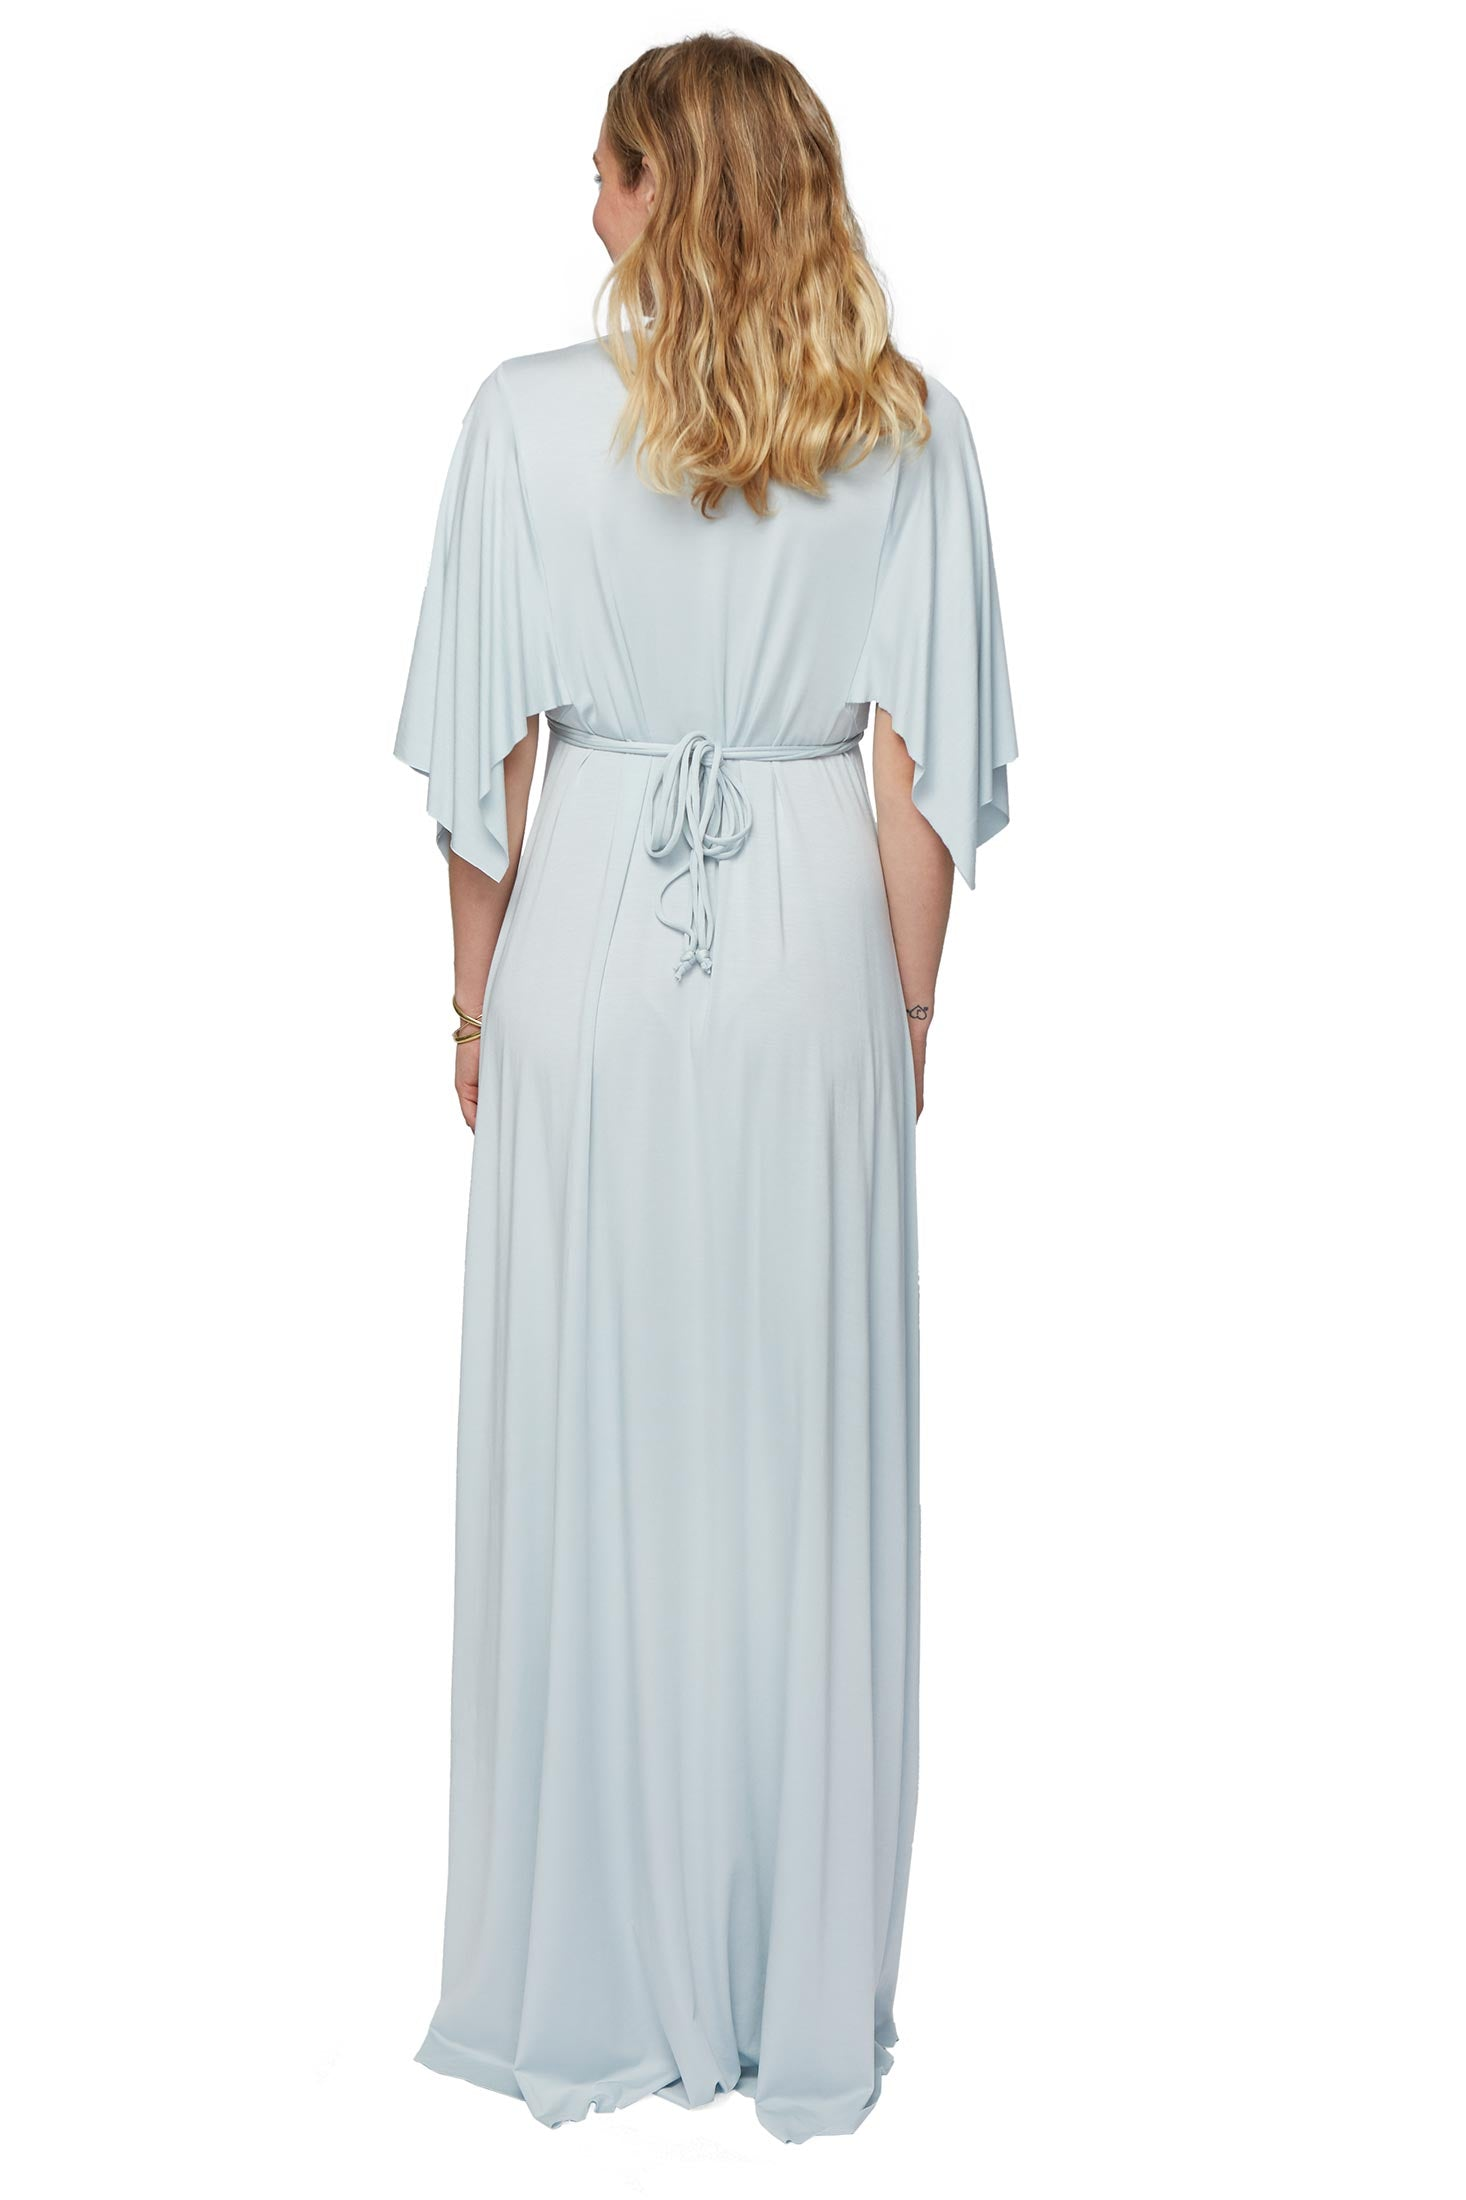 Long Caftan Dress - Cloud, Maternity